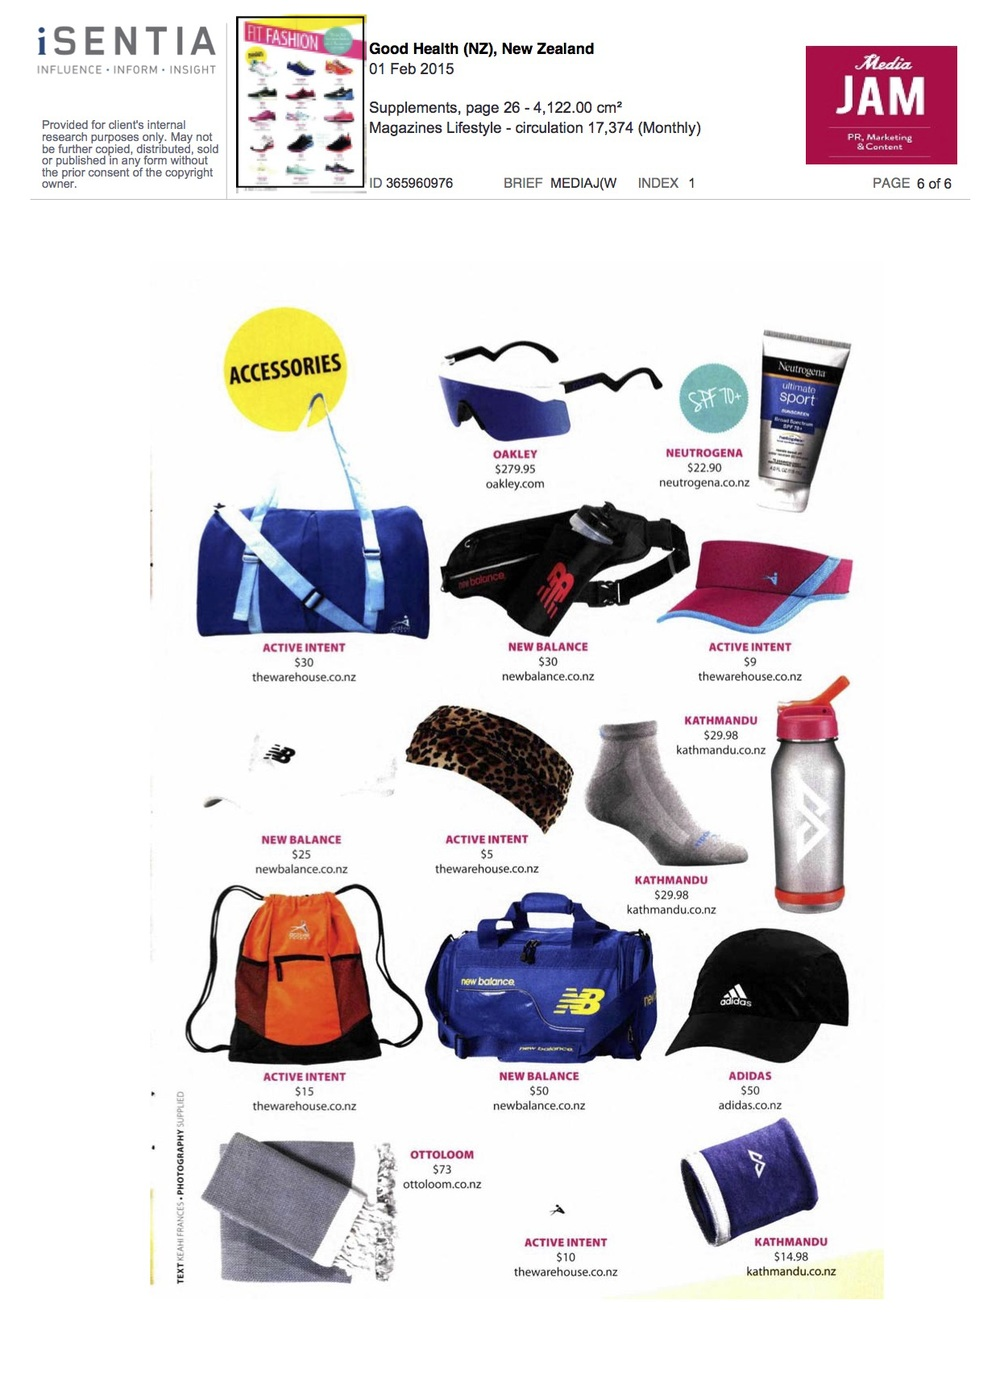 6Good Health Magazine Feb 2015 Fit Fashion Featuring New Balance.jpg